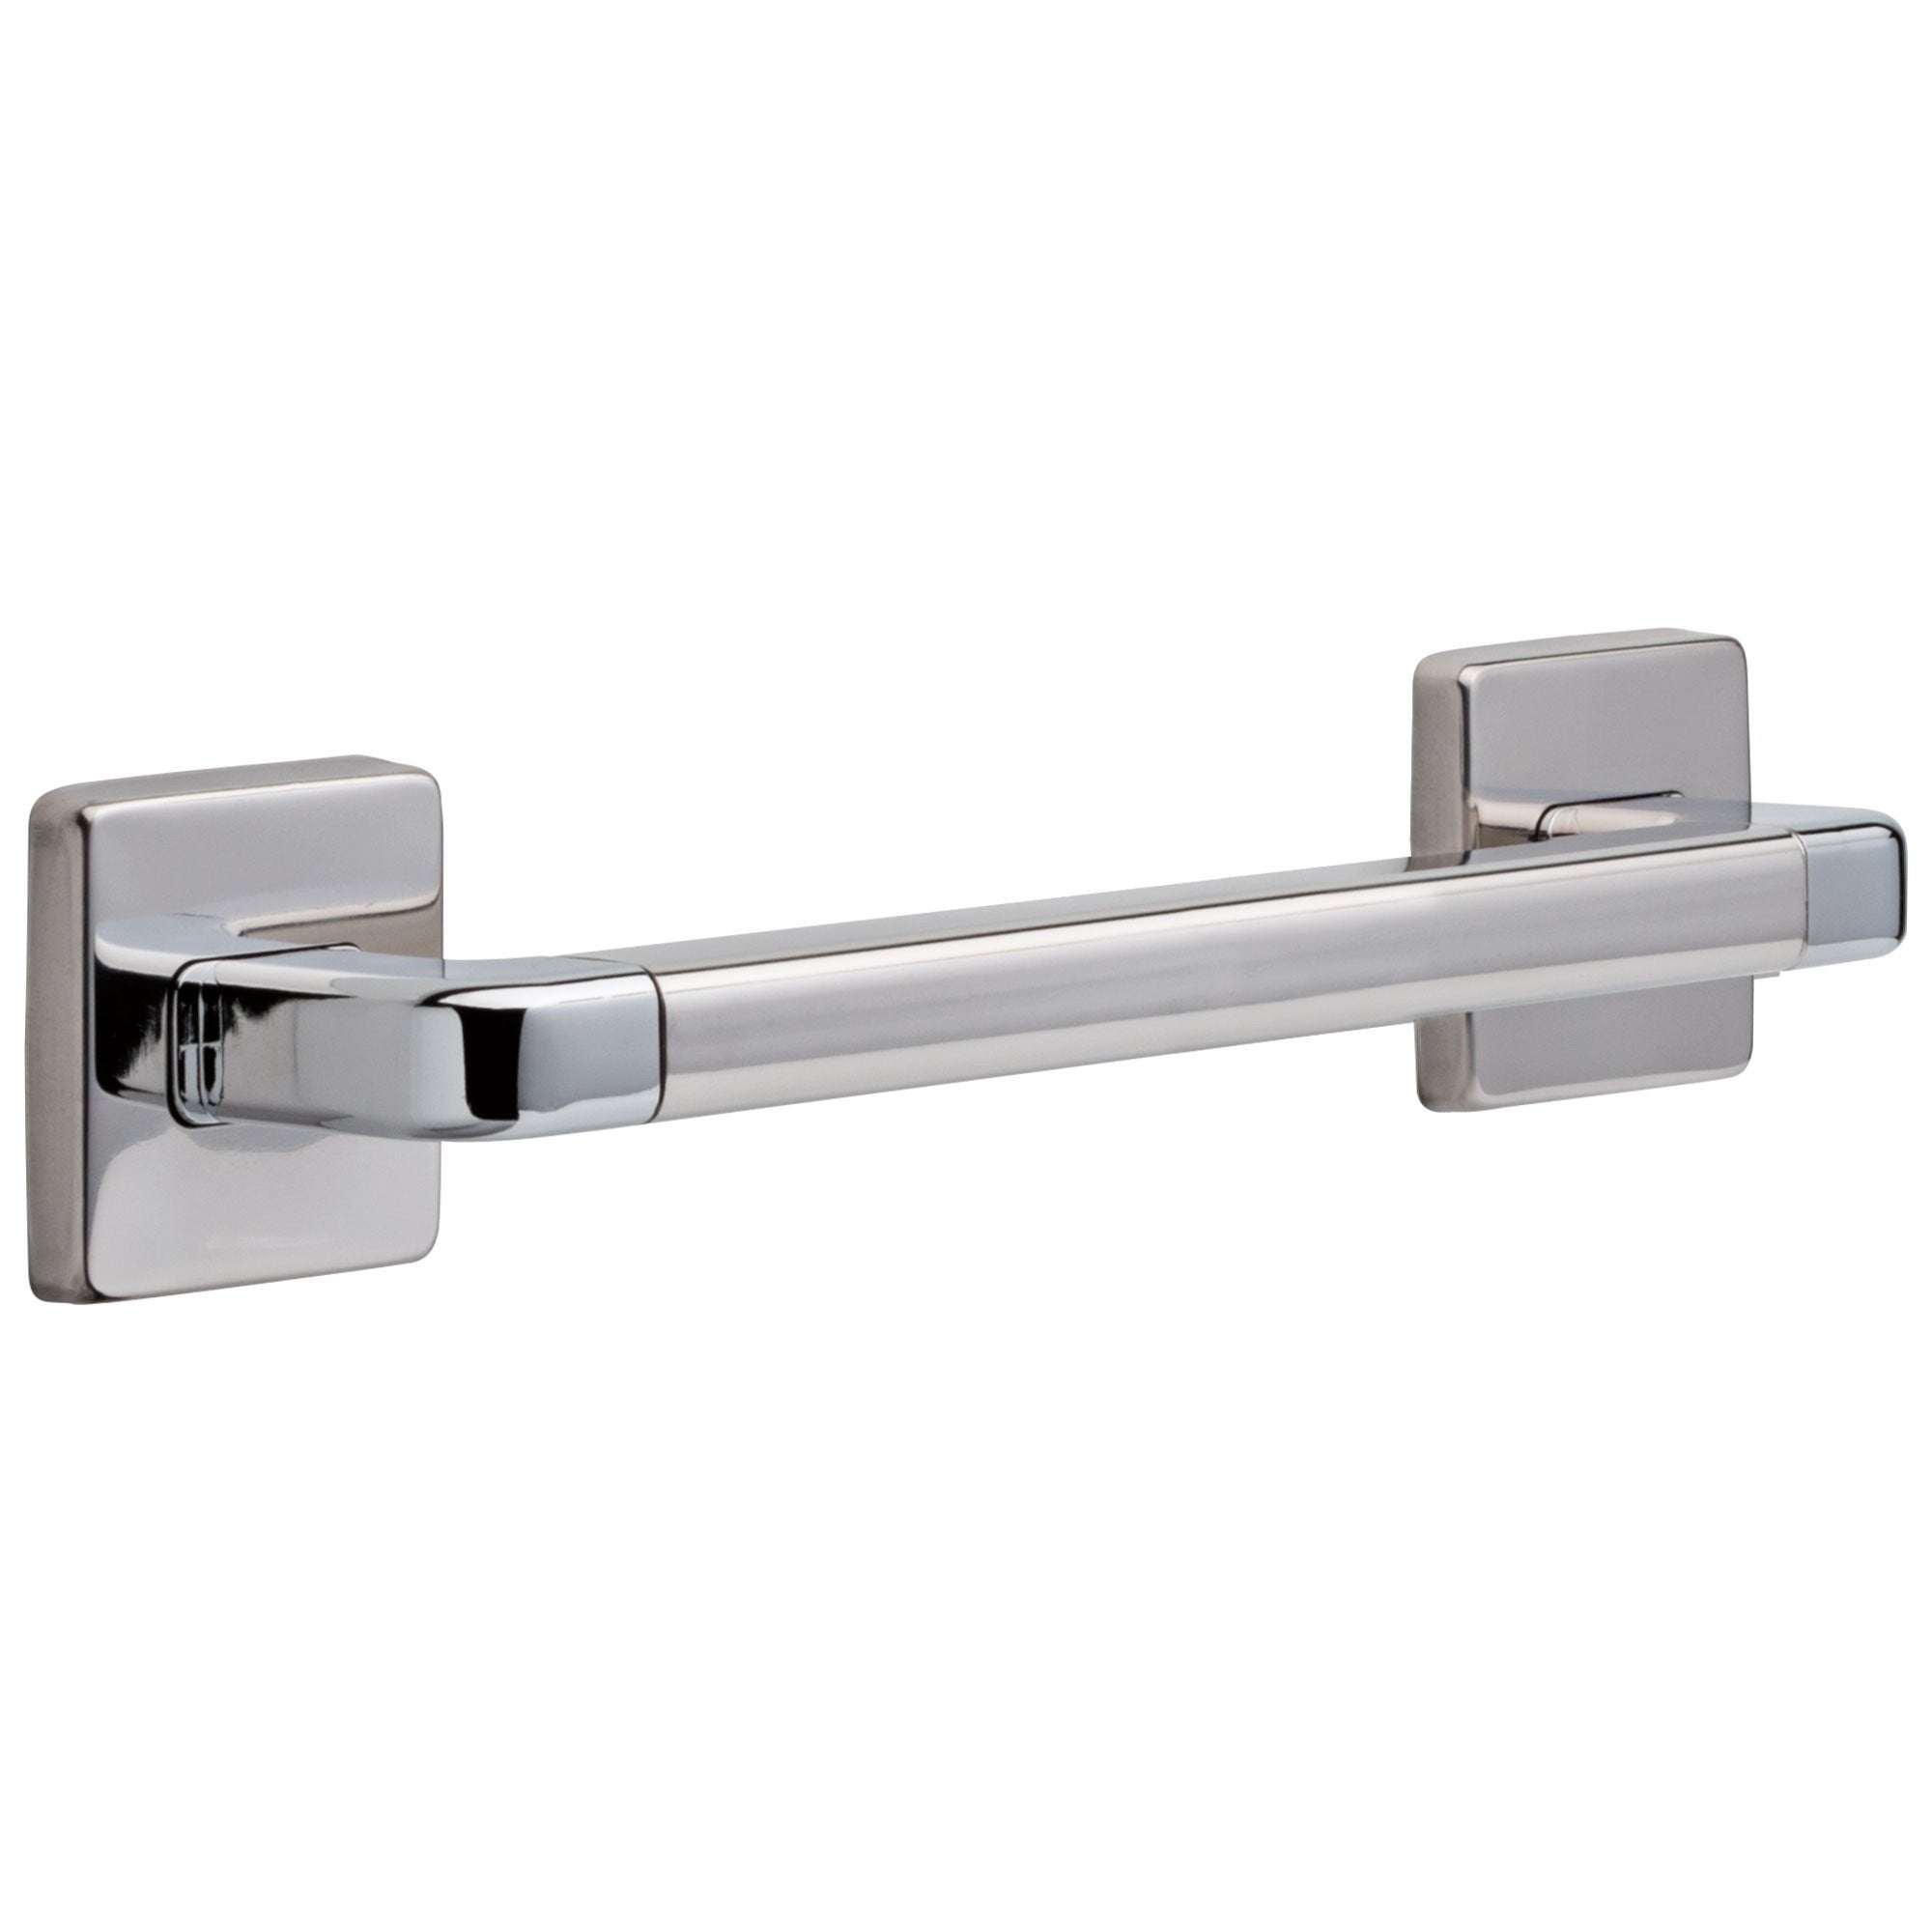 Delta Bath Safety Collection Chrome Finish Angular Modern Decorative ADA Approved Wall Mount Short 12-inch Grab Bar Handle D41912